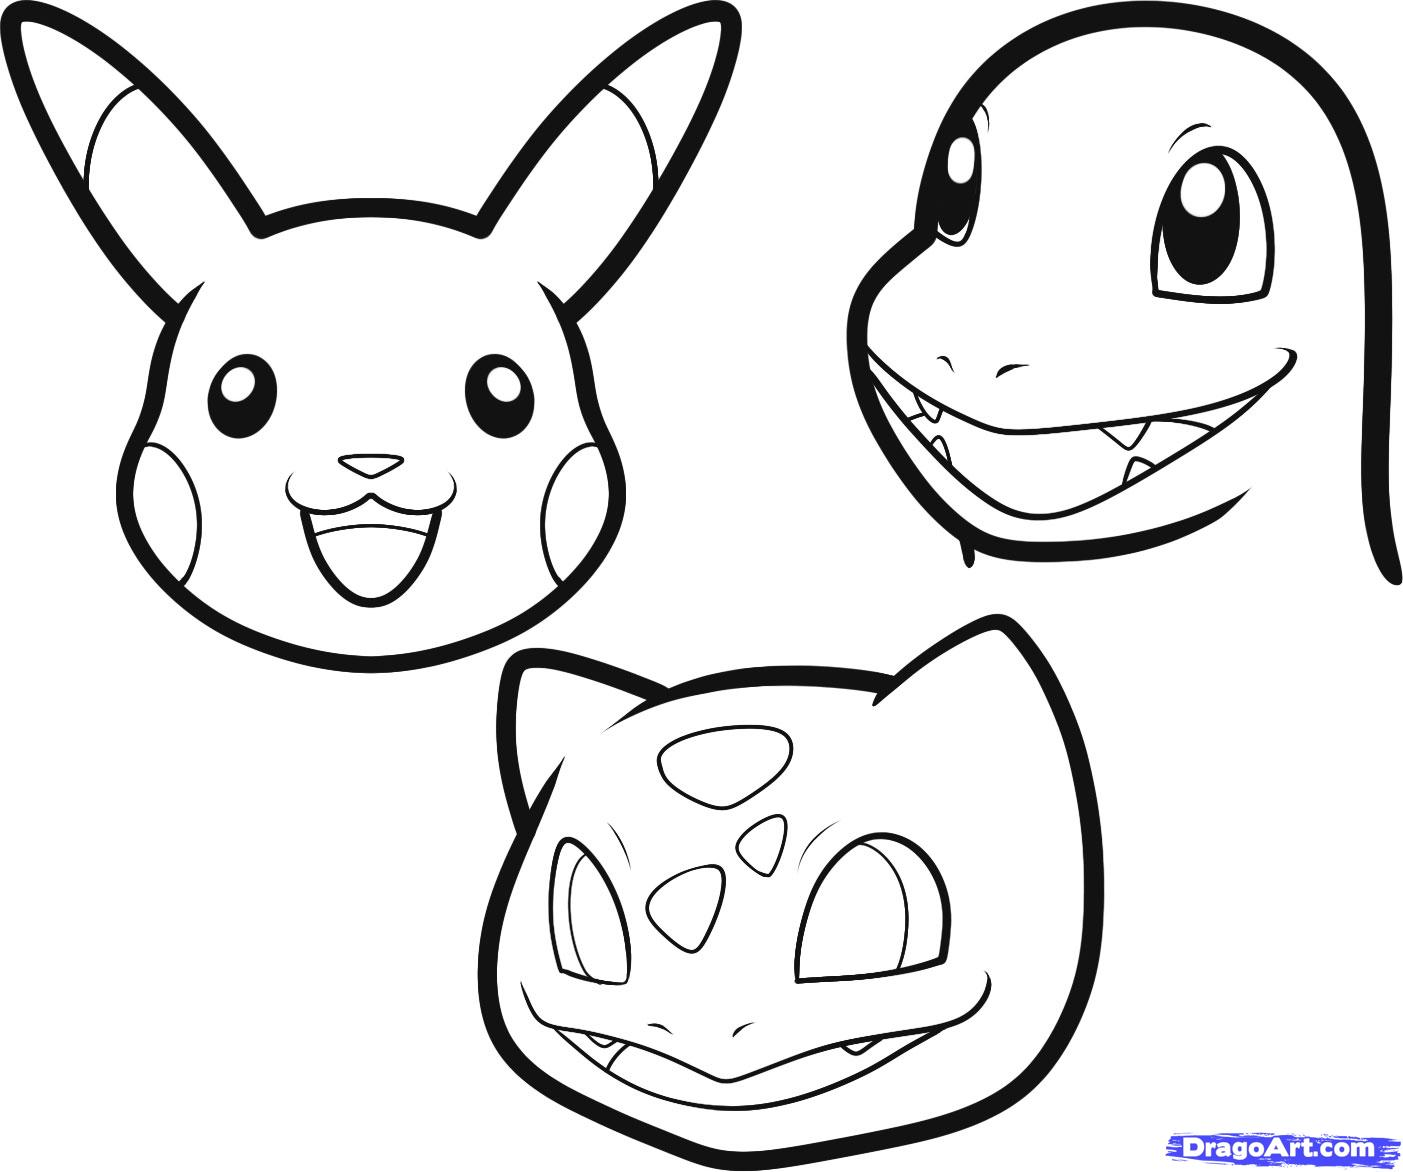 Cool Drawings To Draw Easy